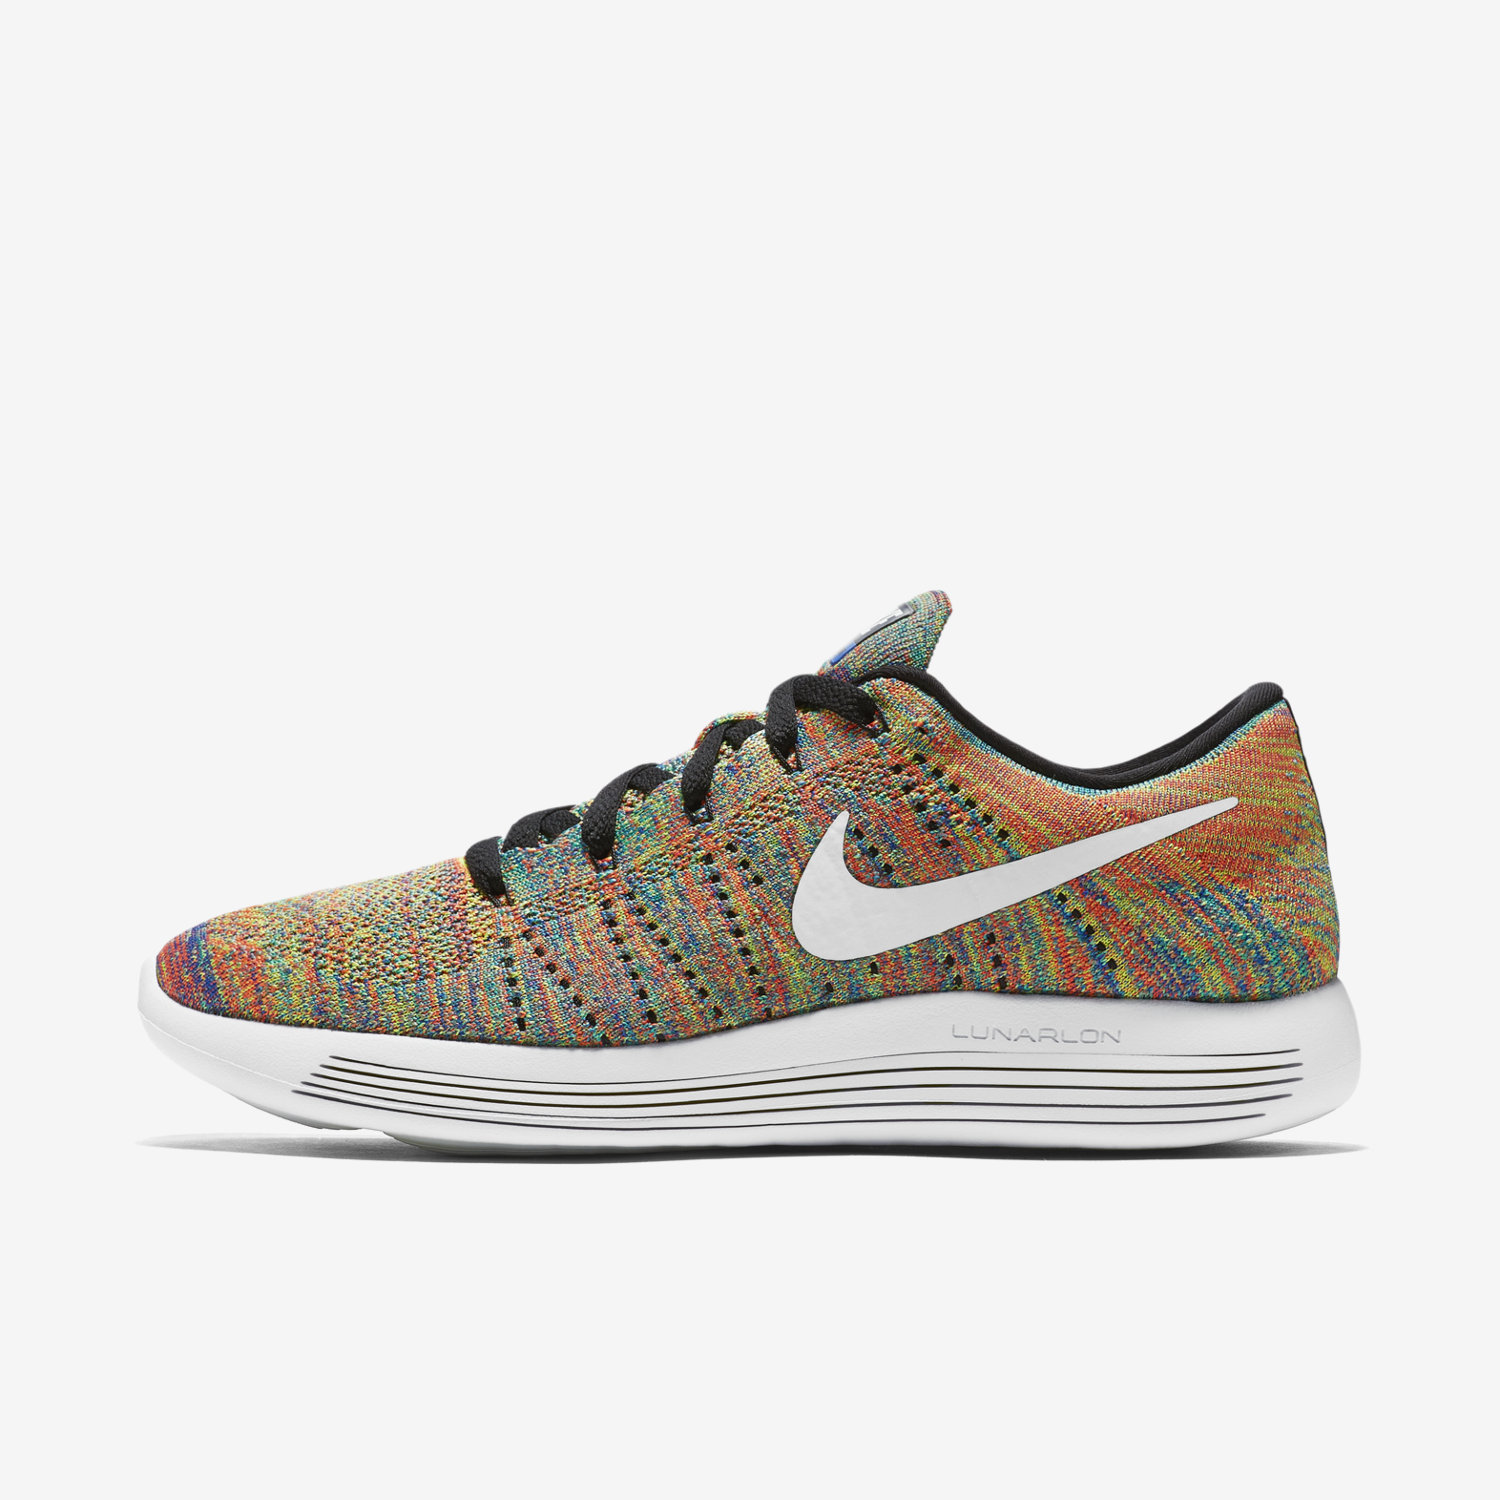 new concept 03623 3d59b ... 50% off cheap nike lunarepic low flyknit mujeres oro gris nike  lunarepic low flyknit mujeres